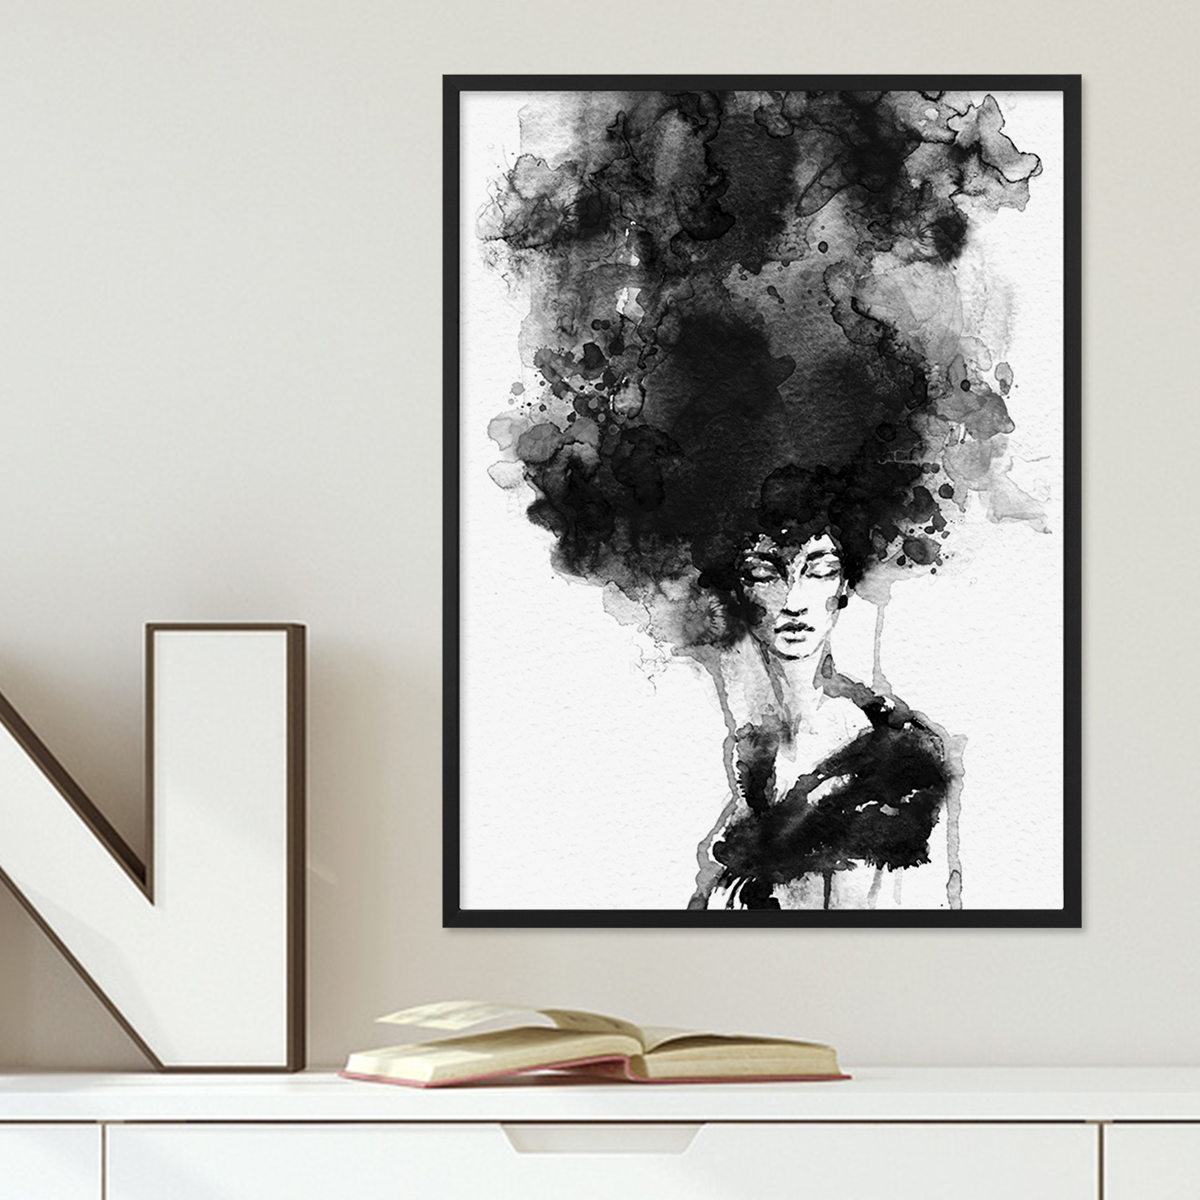 design poster 39 woman 39 30x40 cm schwarz weiss motiv frau aquarell poster design motive. Black Bedroom Furniture Sets. Home Design Ideas